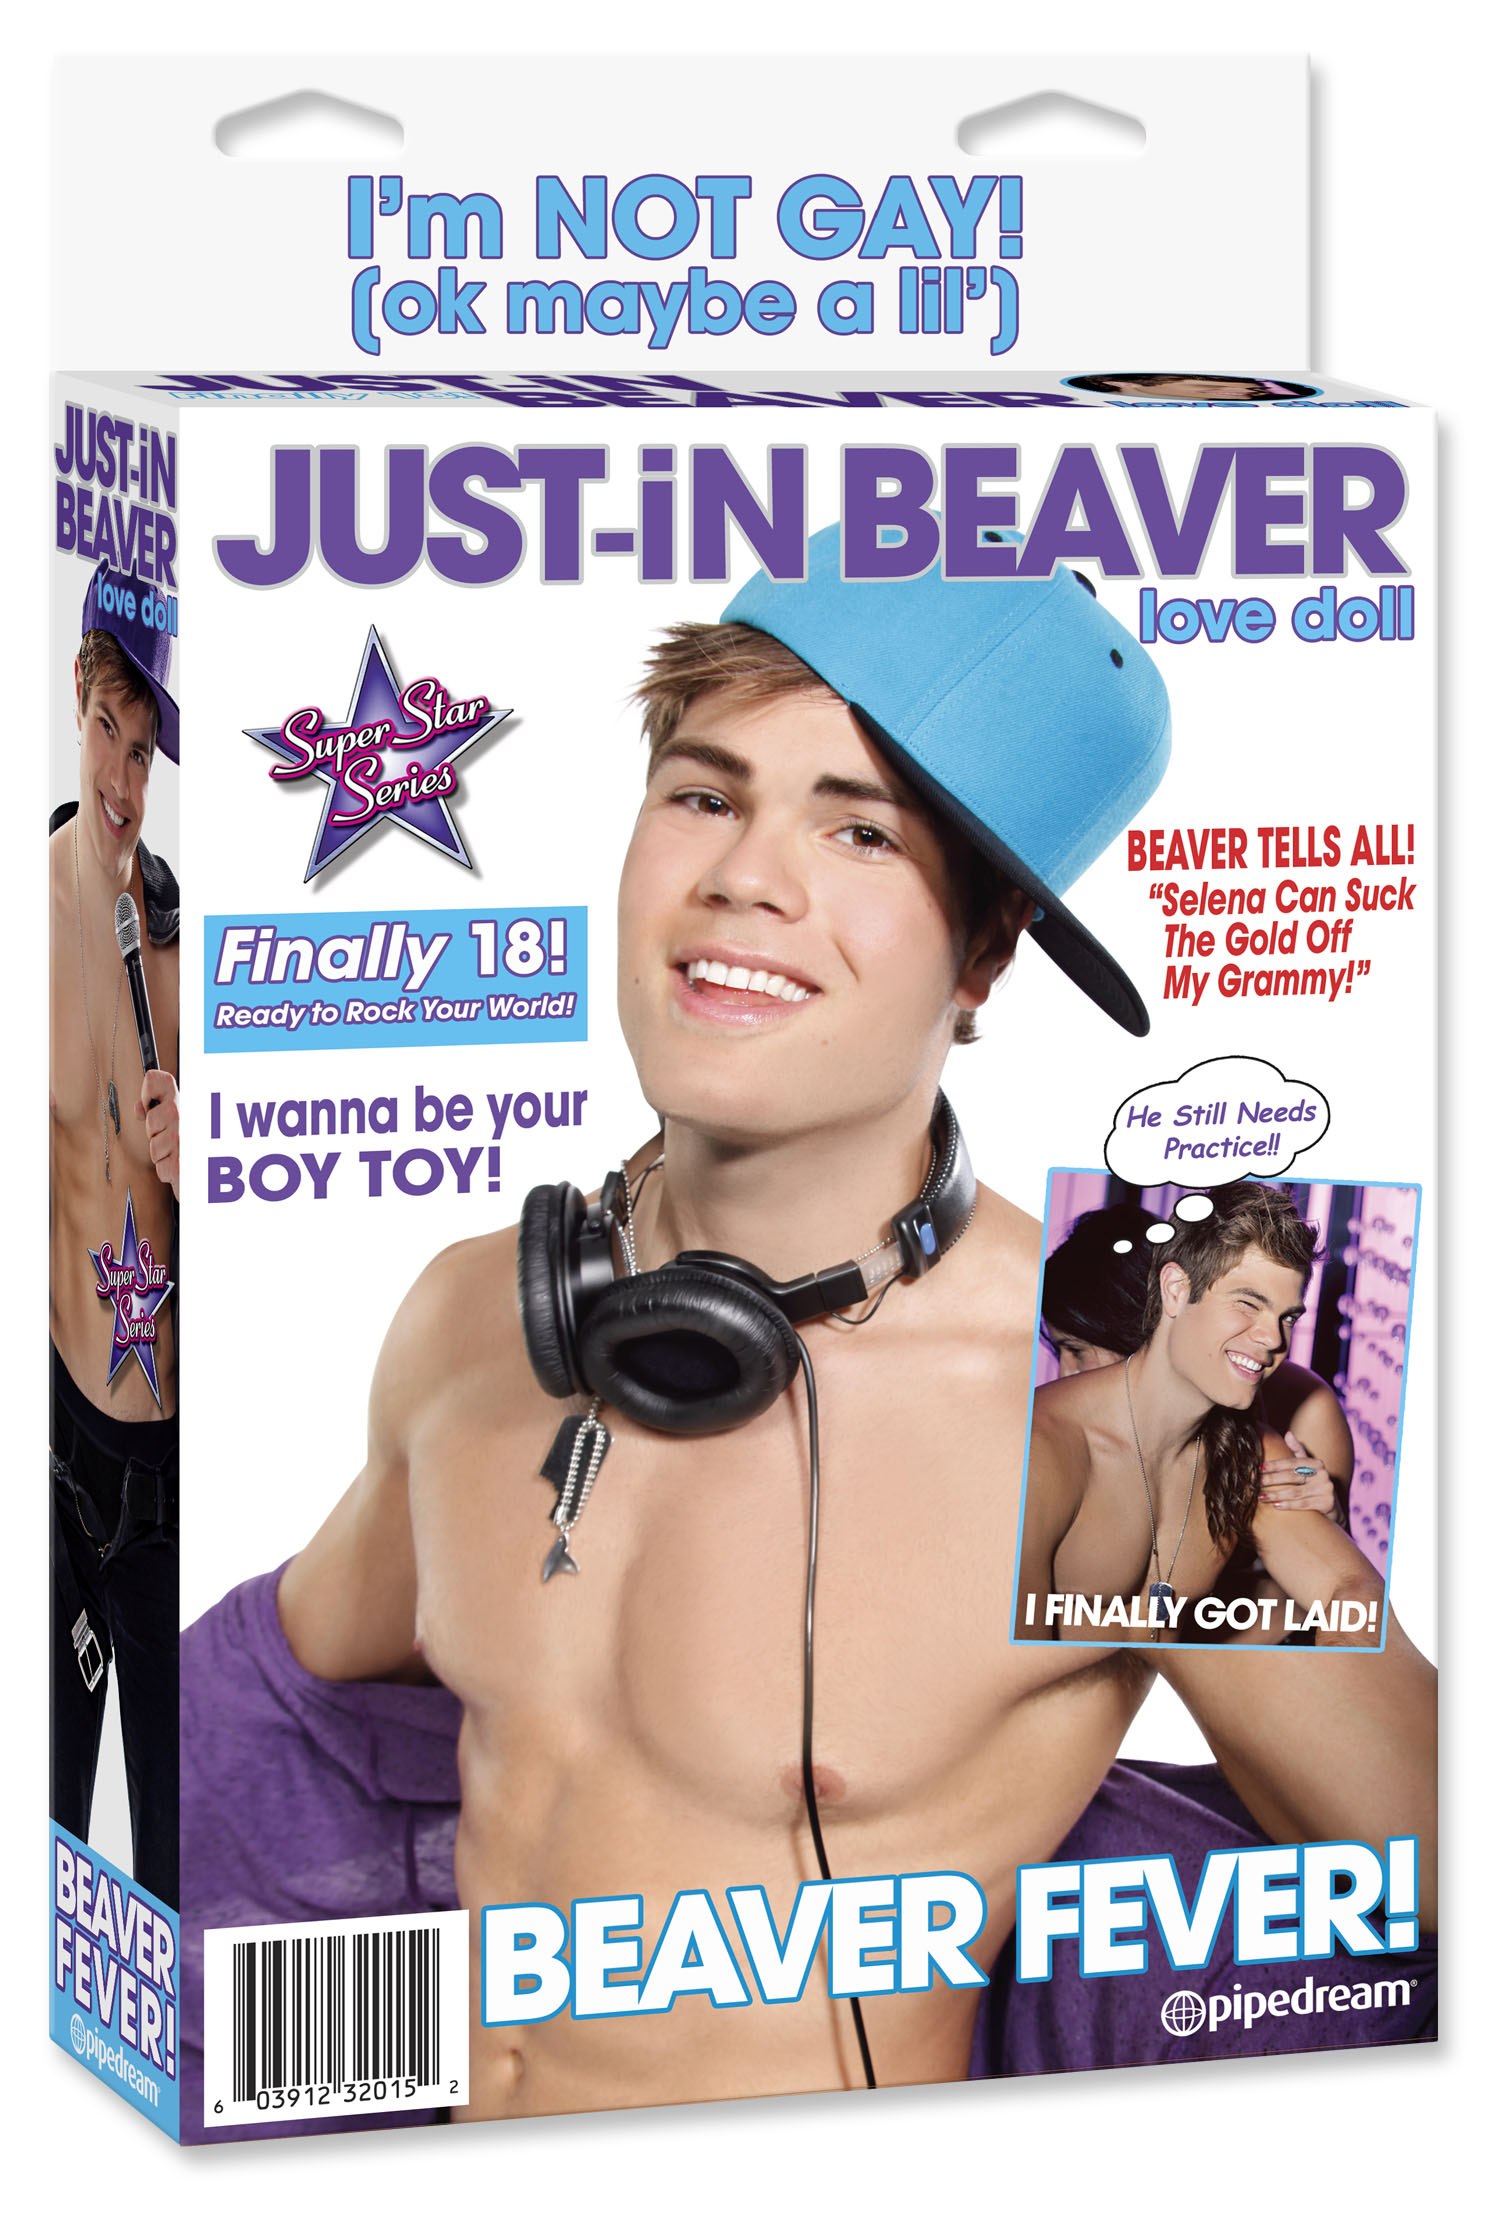 Just-in Beaver and 7 more of the unsexiest sex toys of all time